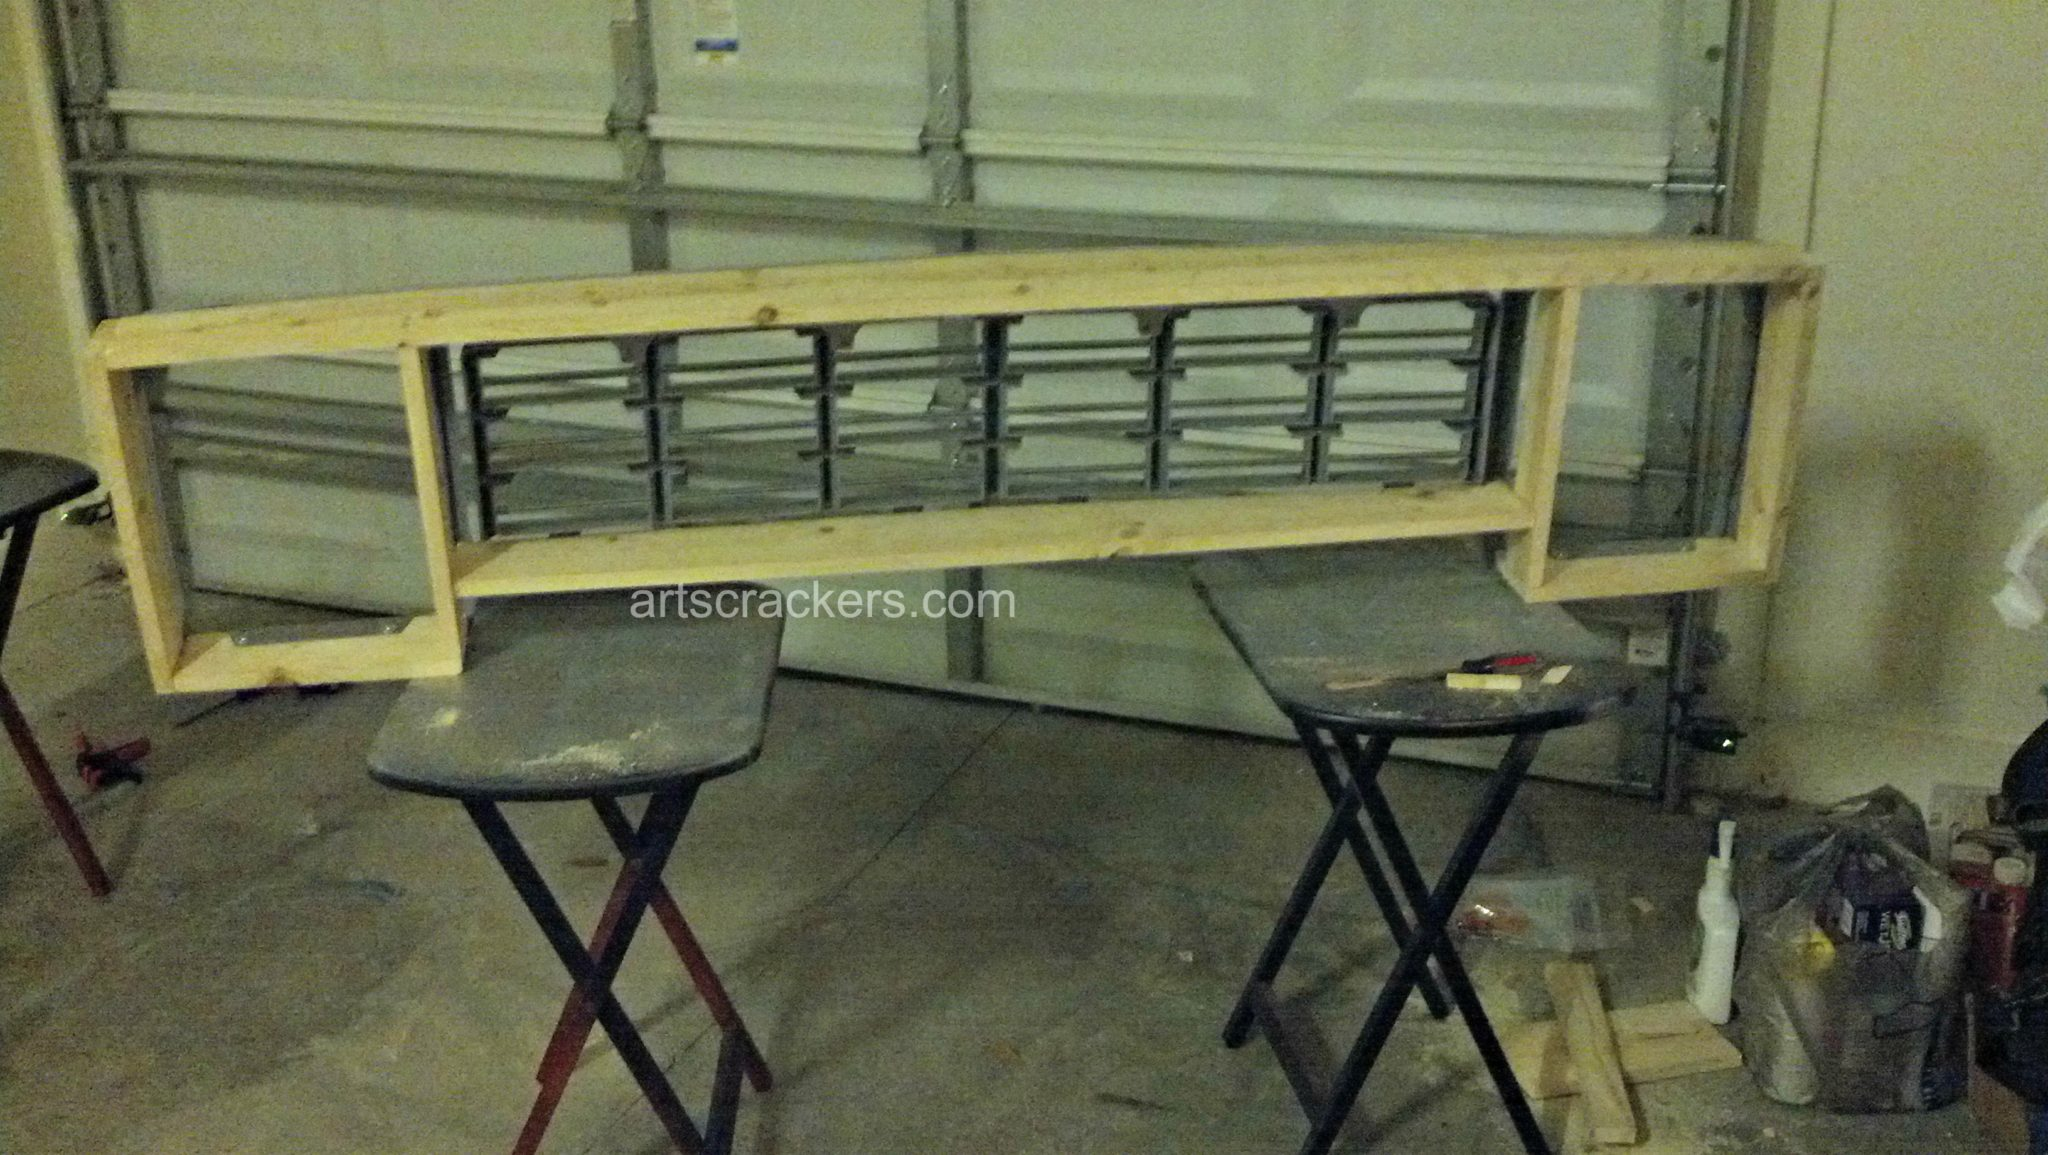 Truck Grill Wooden Frame